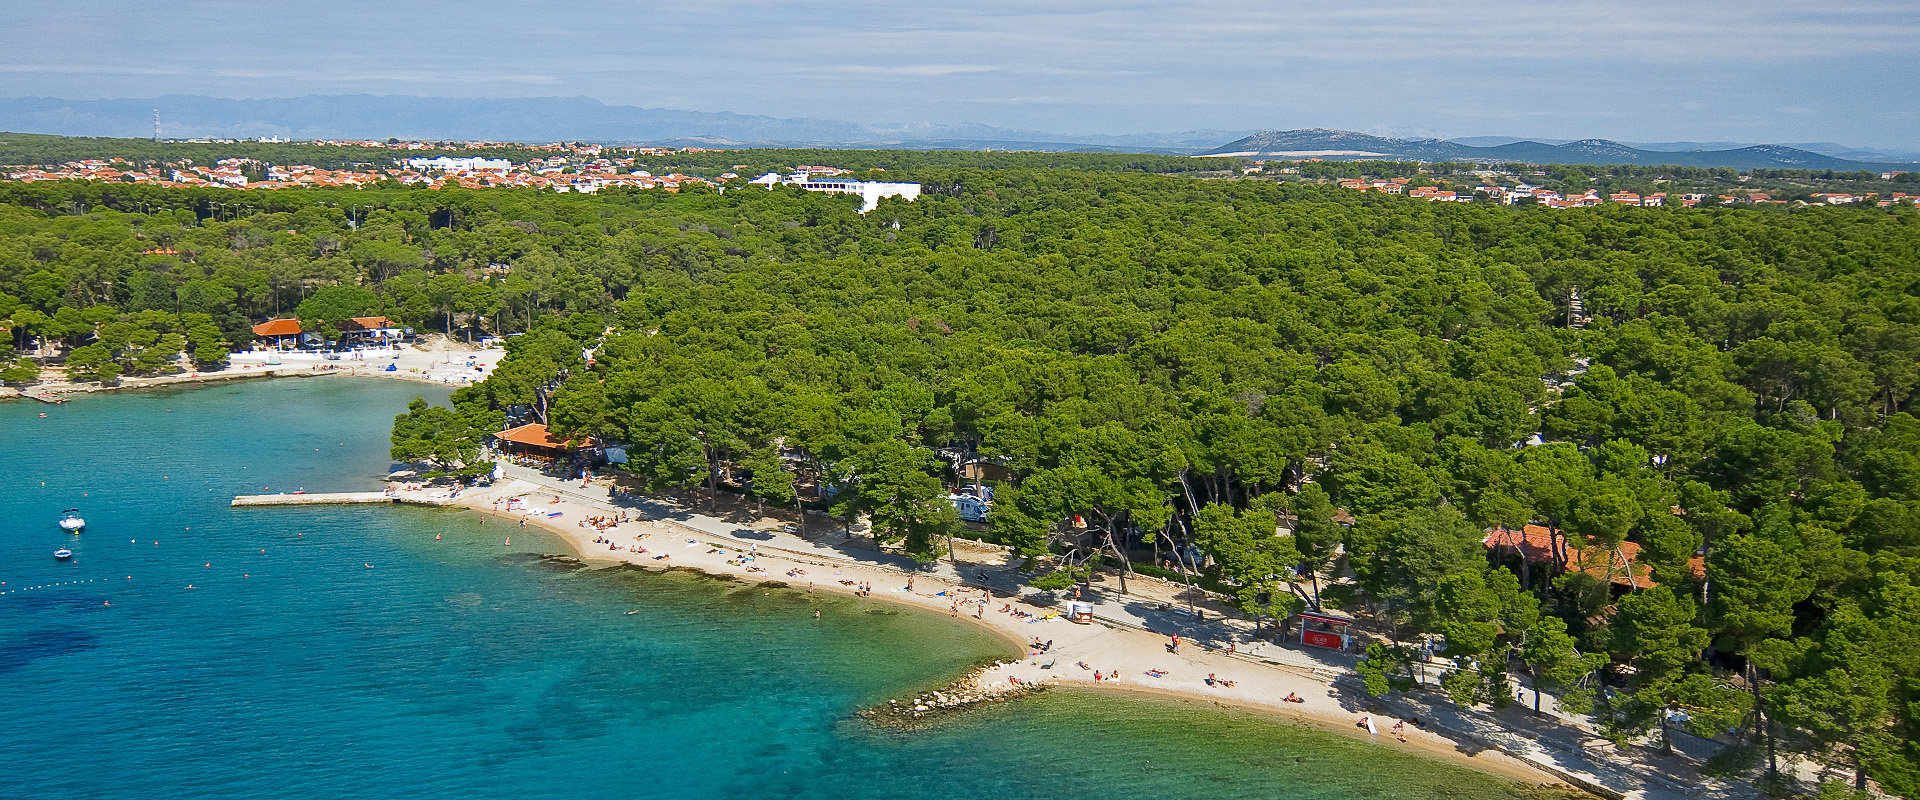 camping park soline welcome to biograd dalmatia. Black Bedroom Furniture Sets. Home Design Ideas